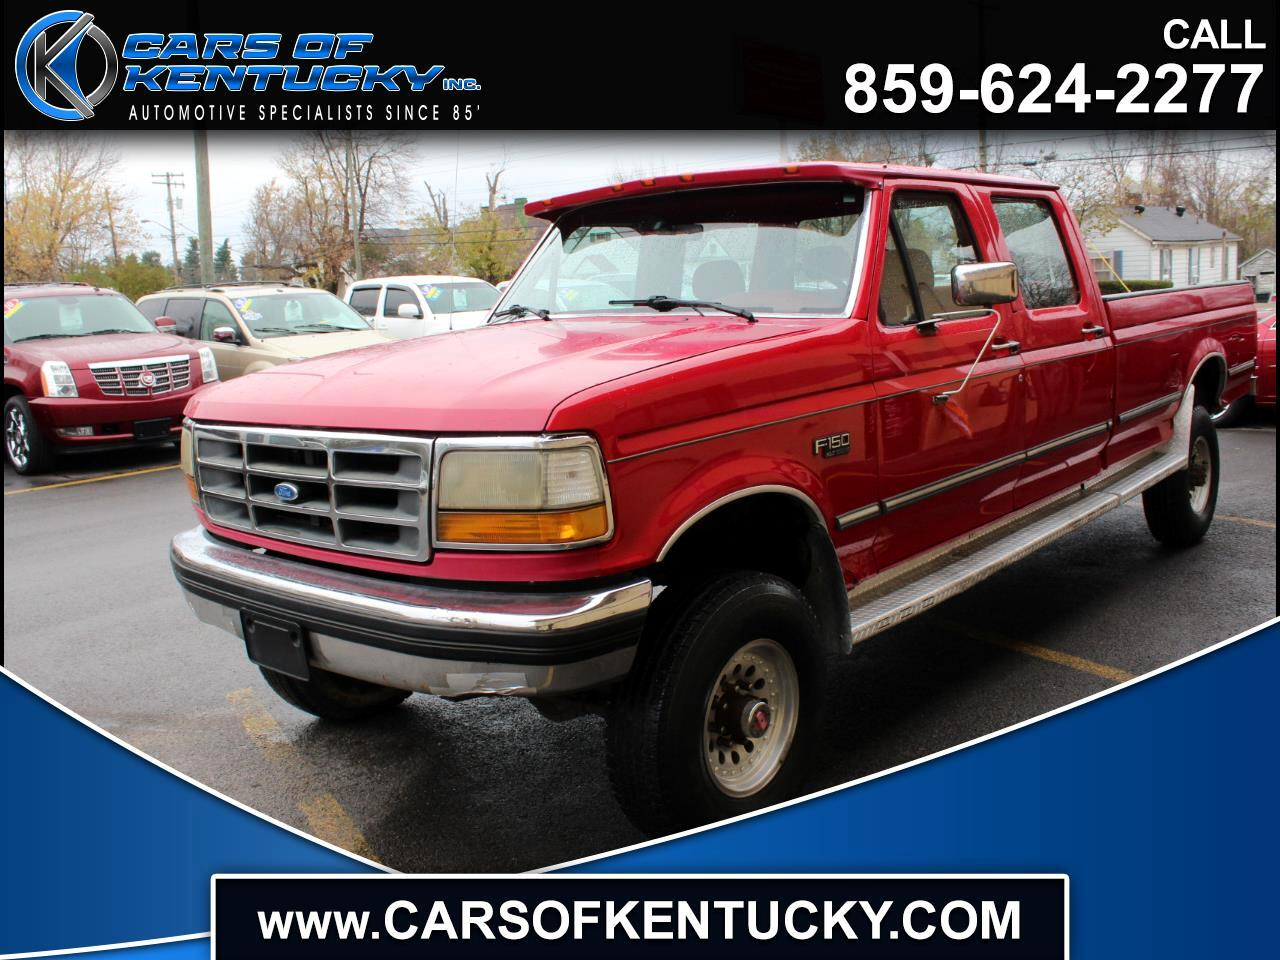 1992 Ford F-350 Crew Cab 4WD